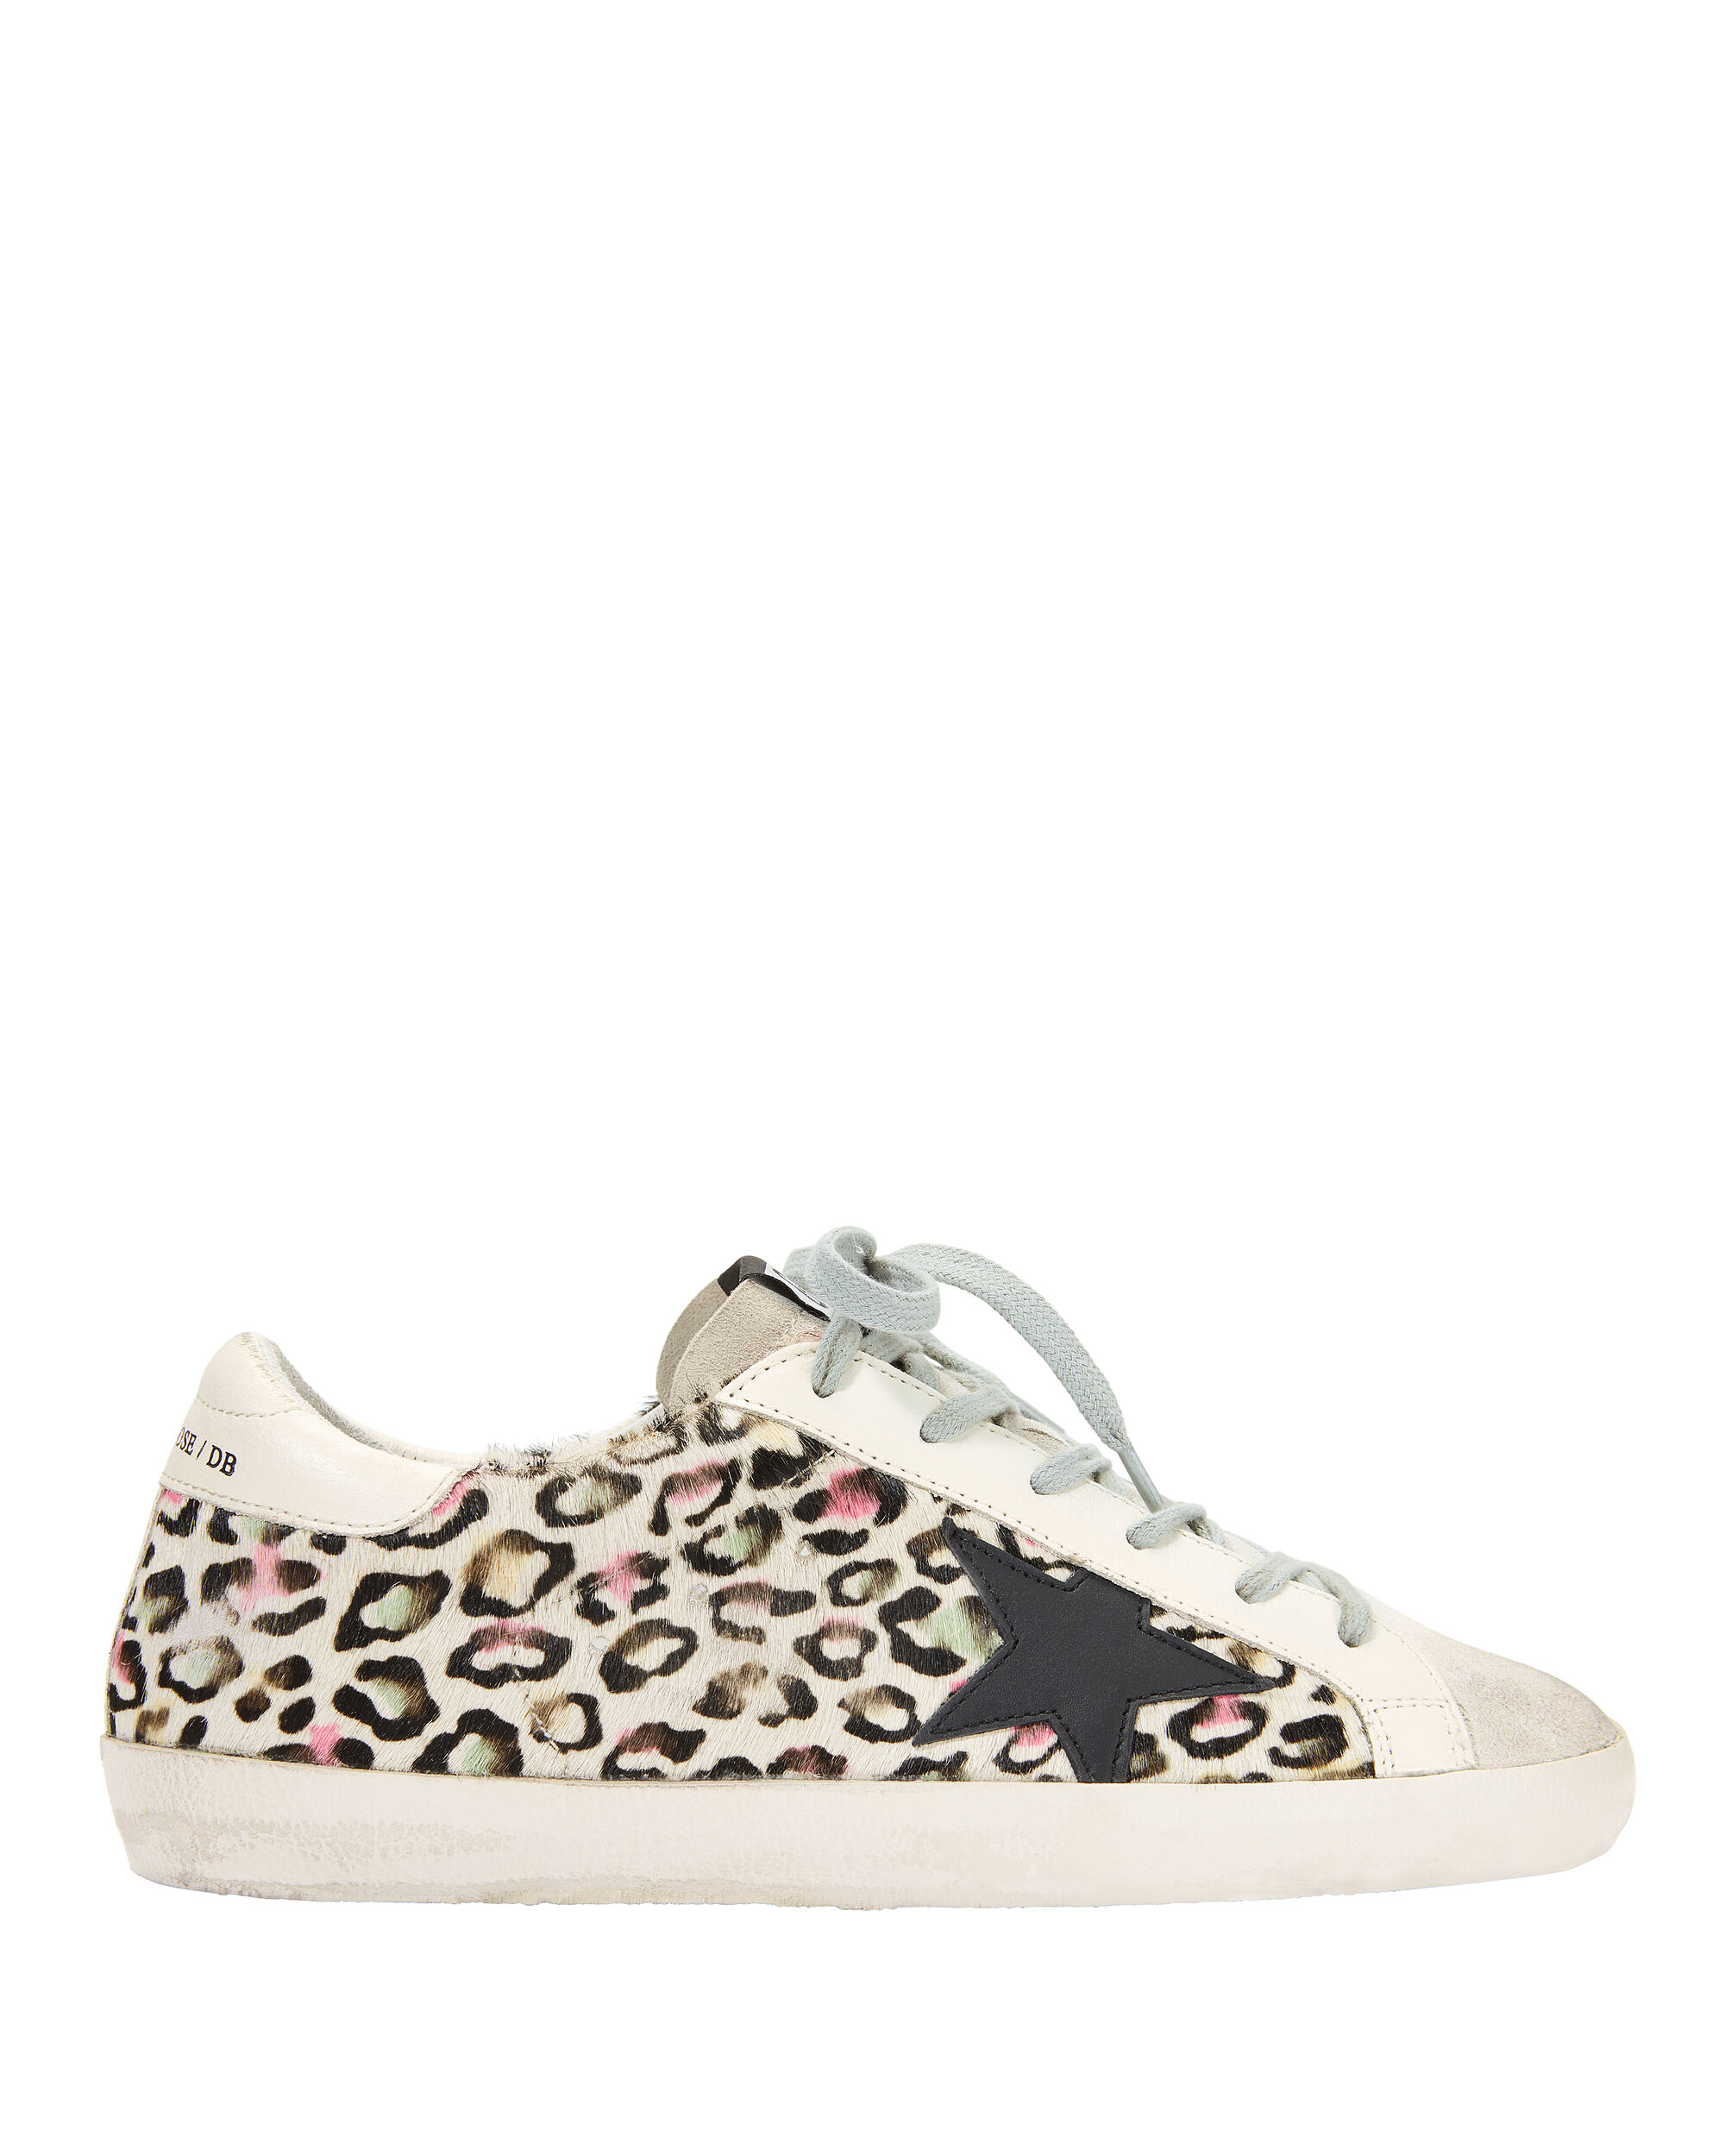 Superstar Animal Print Sneakers, LEOPARD PRINT, hi-res